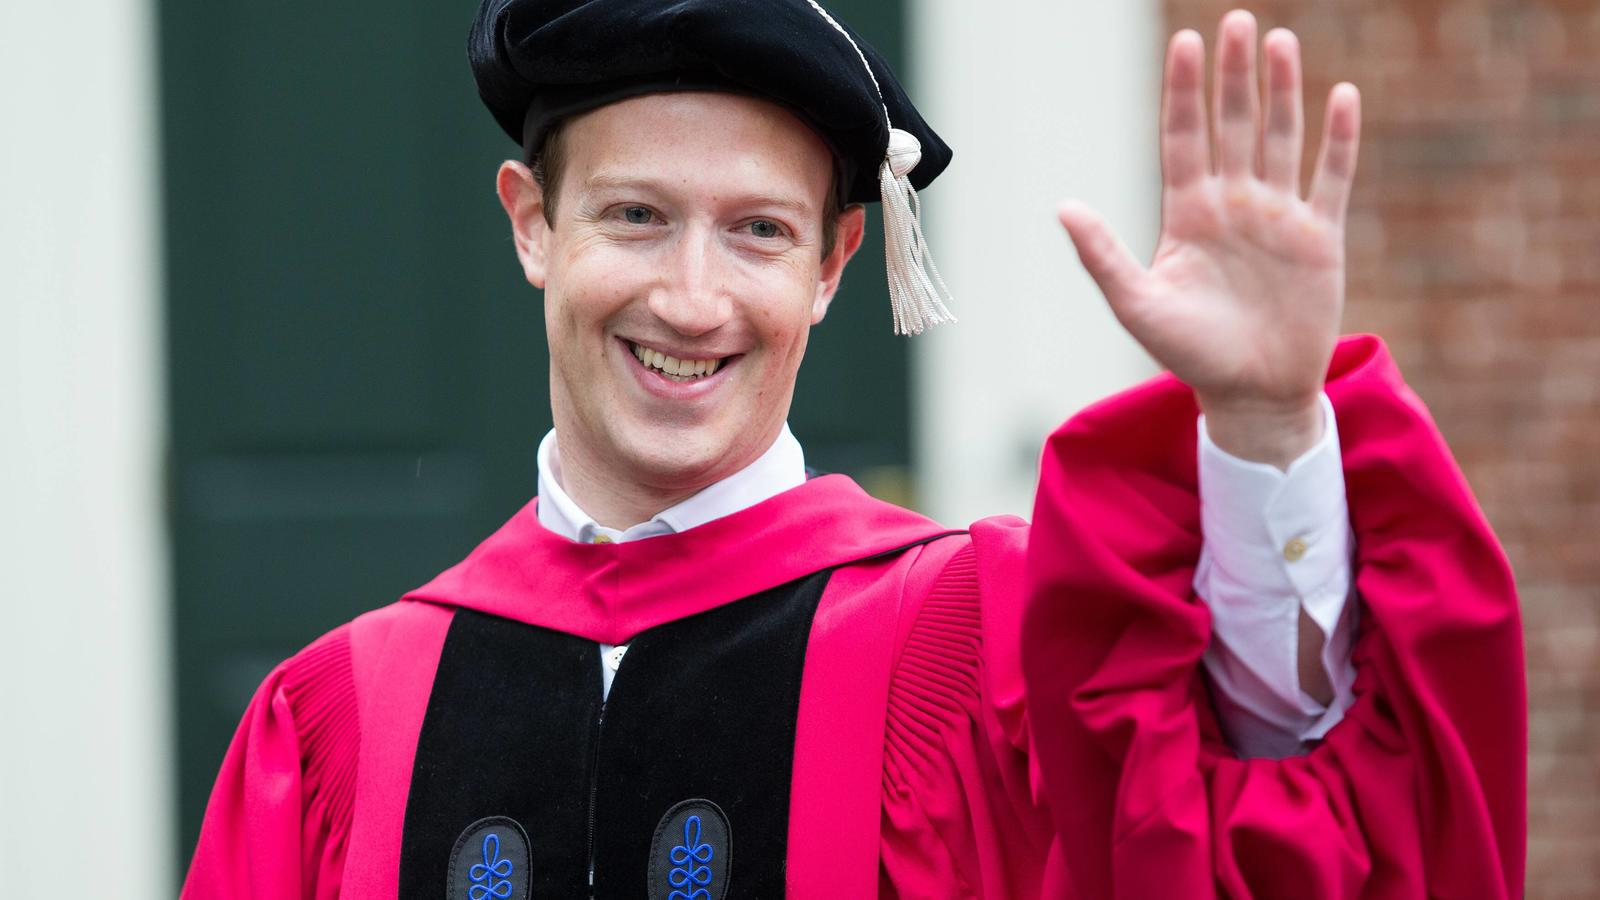 Facebook founder, chairman, and CEO Mark Zuckerberg waves to the crowd at the 366th Commencement for Harvard University at Tercentenary Theatre in Cambridge, Massachusetts on May 25, 2017. Zuckerberg is receiving an honorary degree from Harvard. PUBL